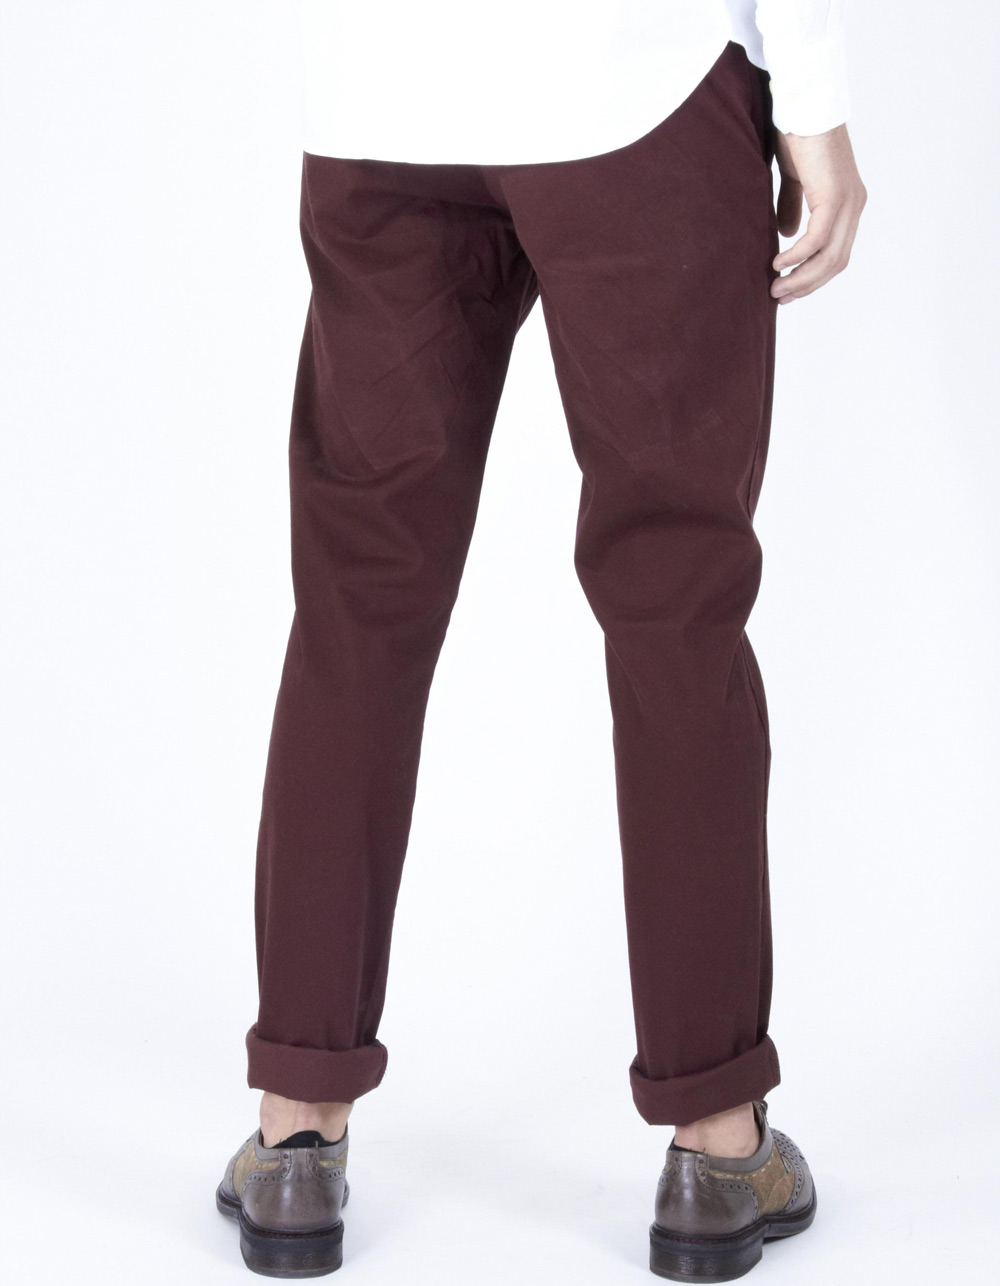 Maroon chinos - Backside